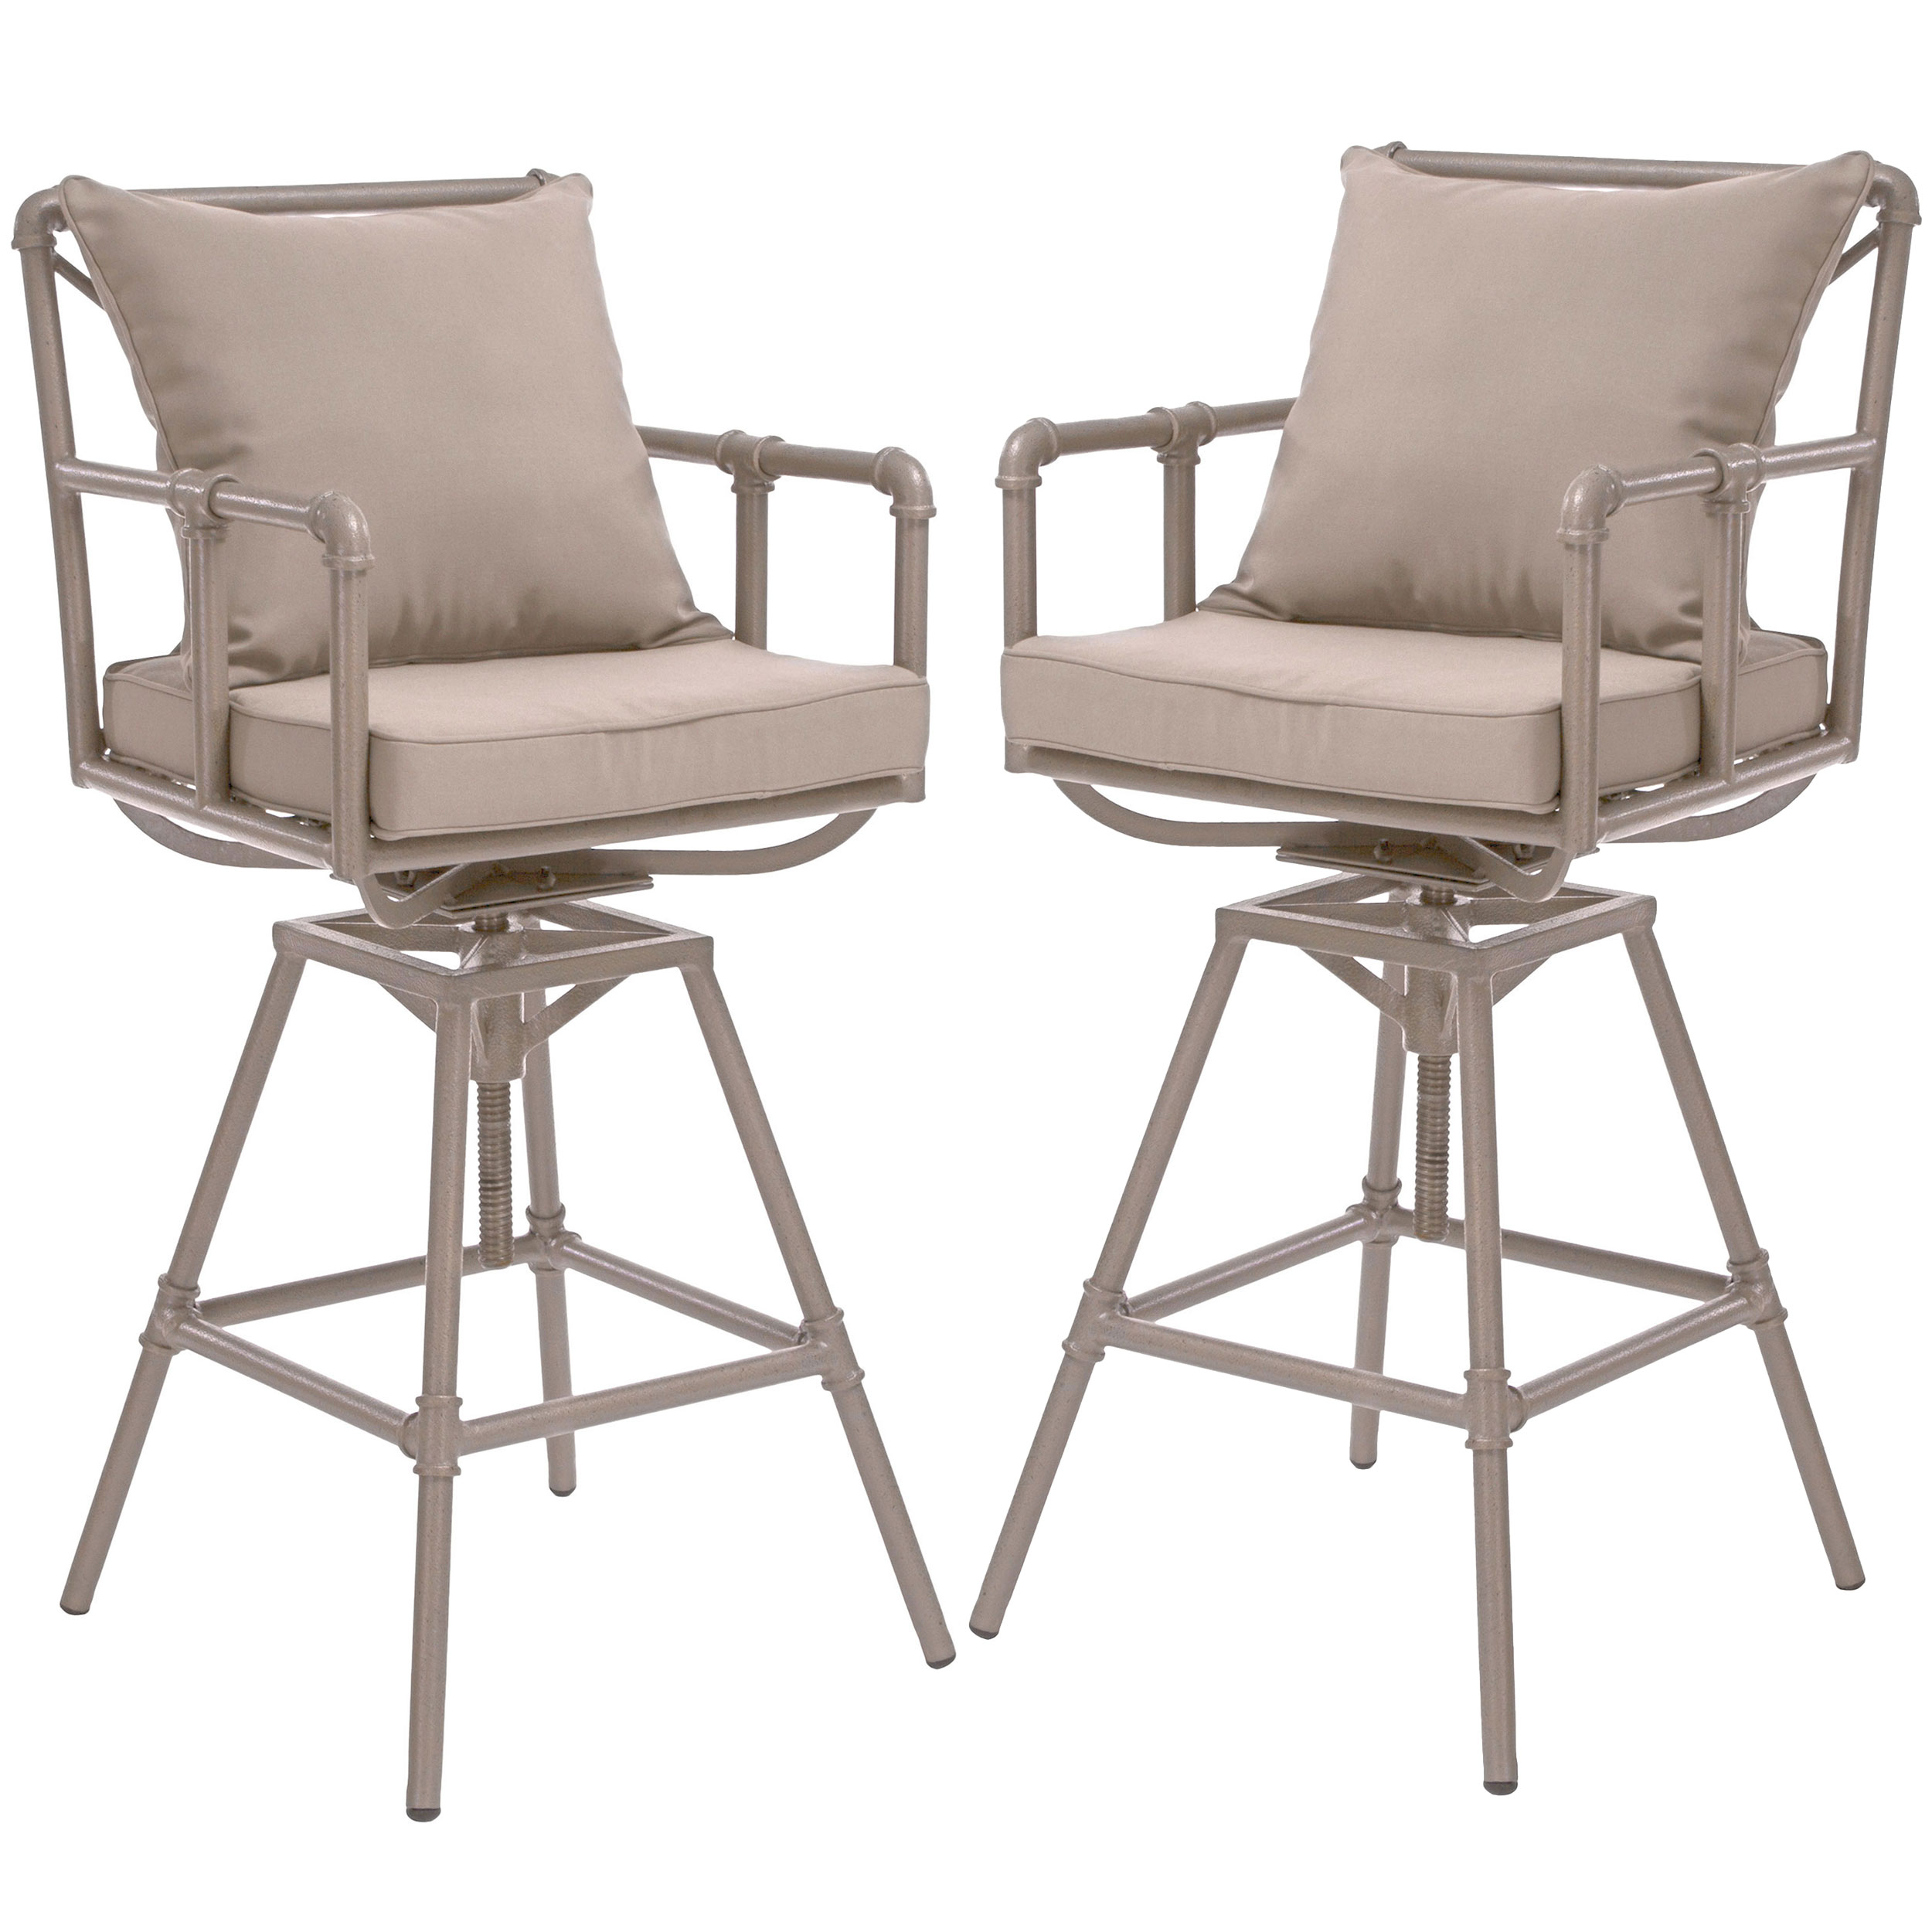 Odele Pipe Outdoor Taupe Swivel Bar Stools with Cushions (Set of 2)